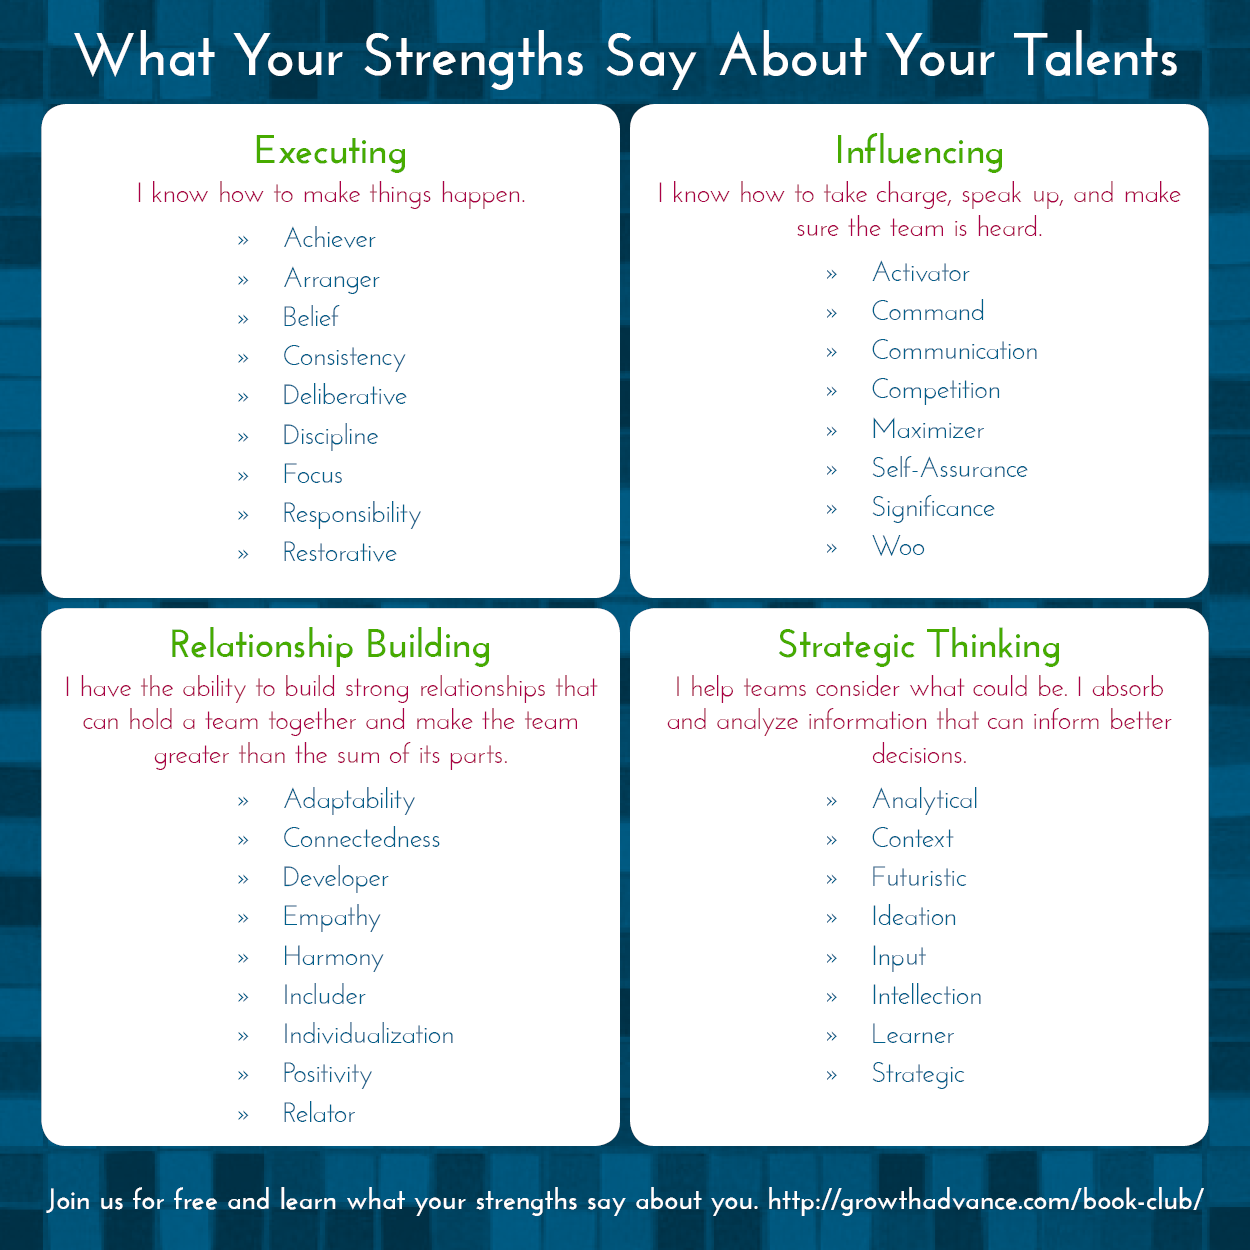 Citaten Over Talent : What do your strengths say about talents learn more